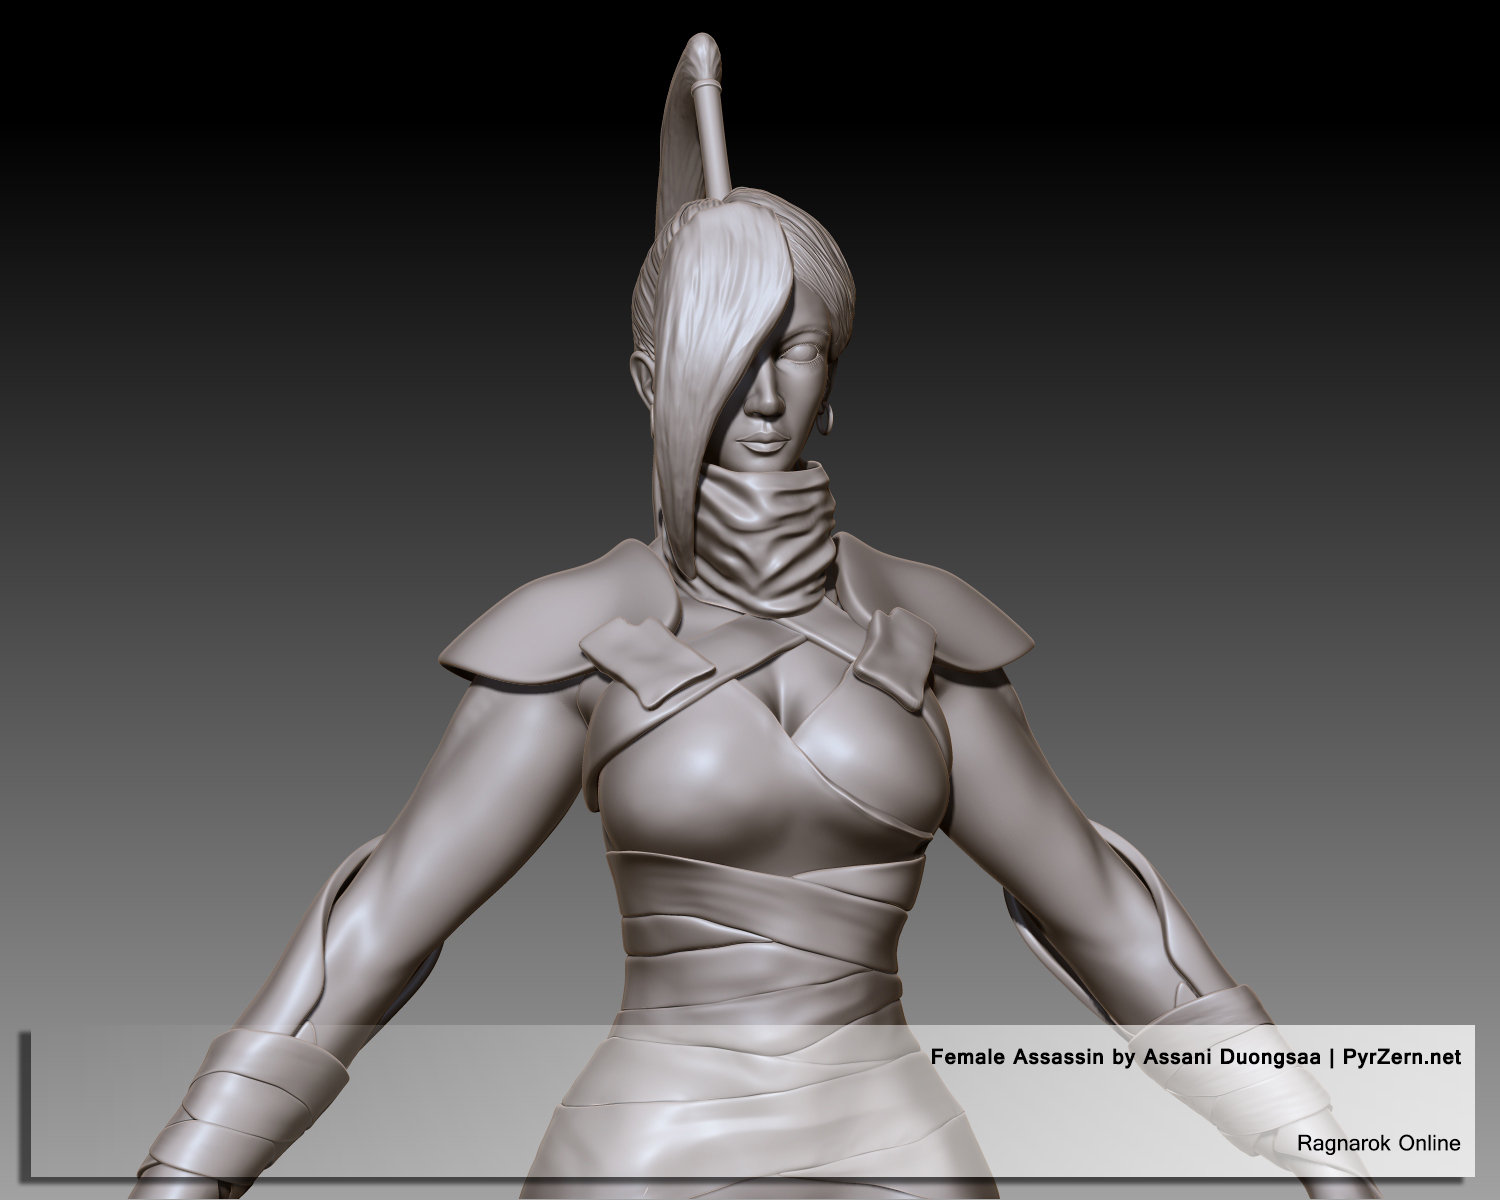 Sculpting - Ragnarok Online Female Assassin